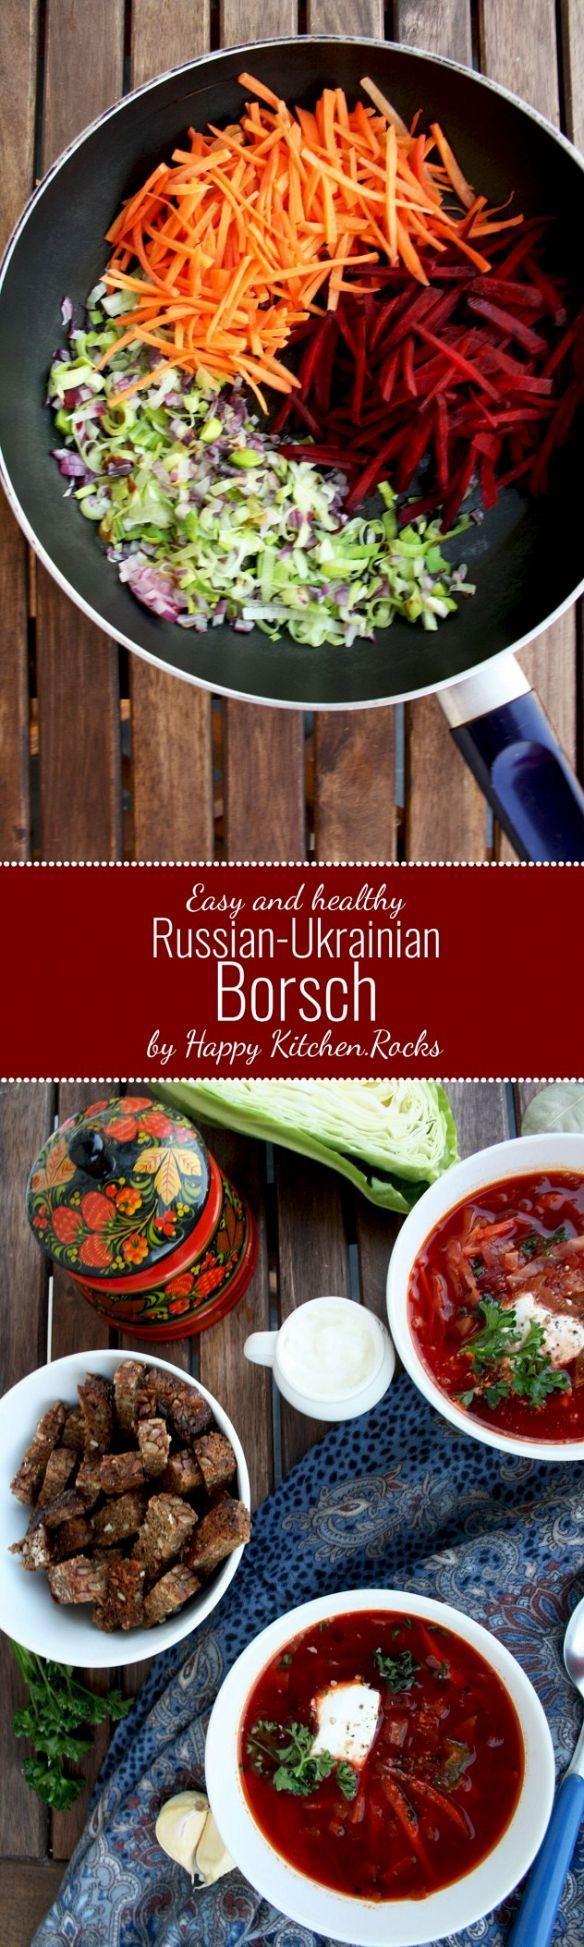 Easy and Healthy Russian-Ukrainian Borsch A thick vegetable soup, with red beet as the main ingredient, wholesome, flavorful, healthy and perfect for nasty autumn weather. Great entree for your Thanksgiving table! Gluten-free, vegan, low carb, low-fat.